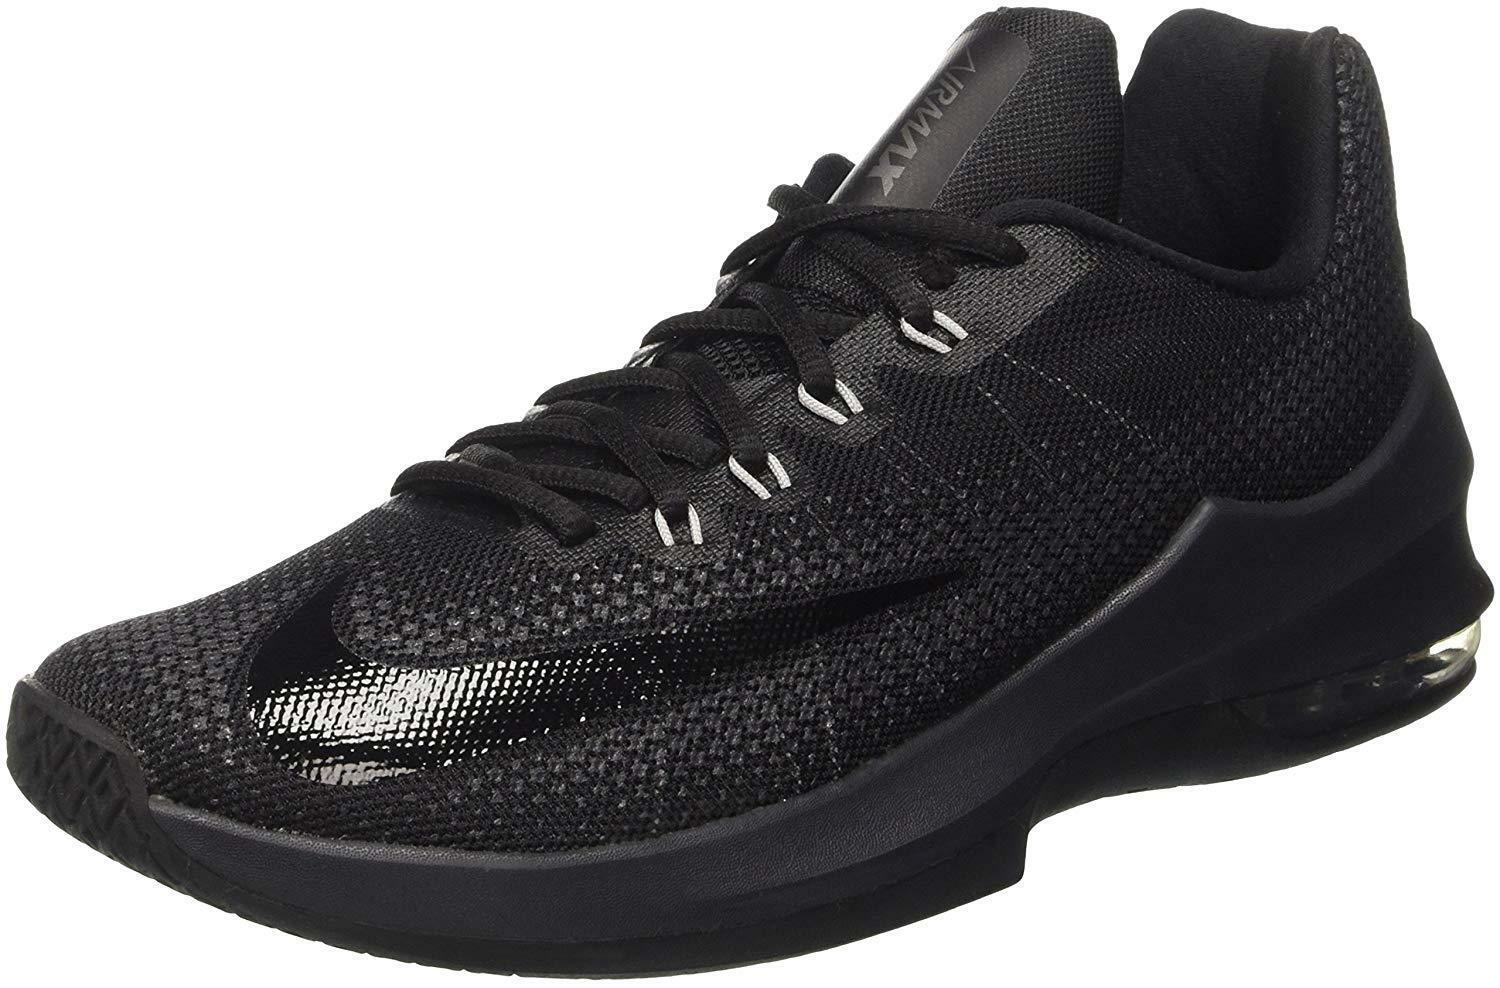 NIKE MENS AIR MAX INFURIATE LOW BASKETBALL SHOES